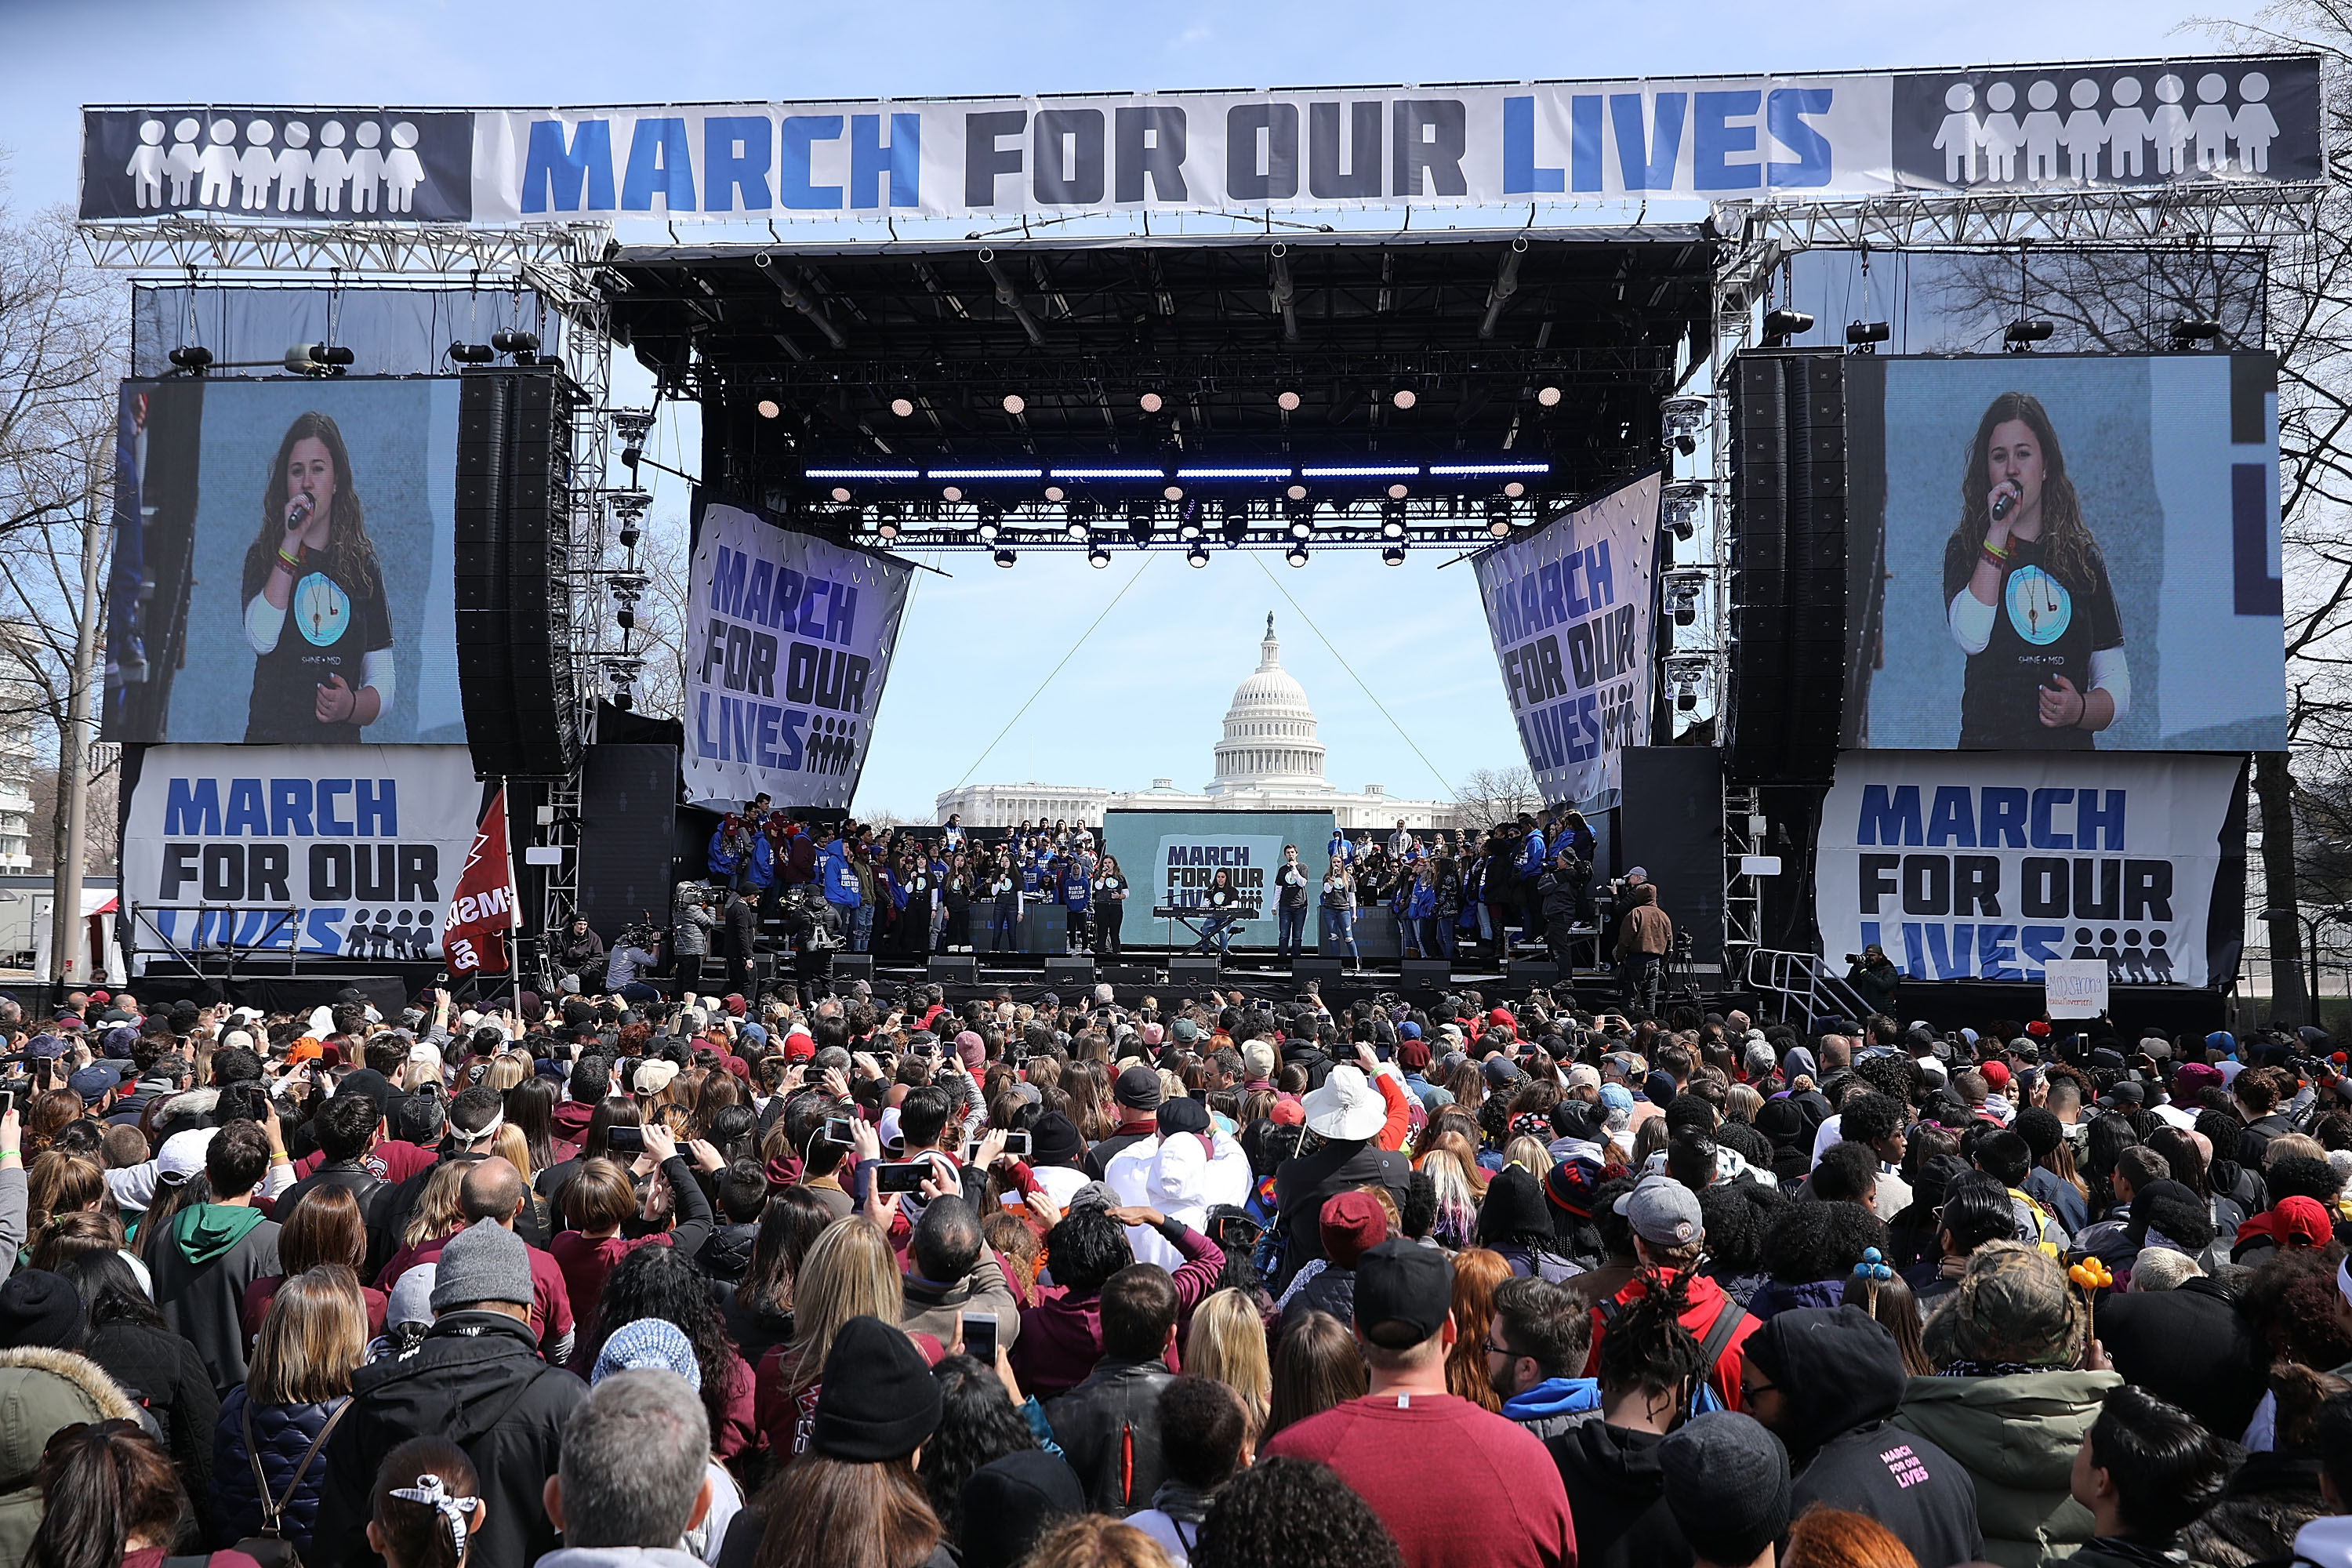 Marjory Stoneman Douglas High School drama club and choir members perform  Shine  during the March for Our Lives rally on March 24, 2018 in Washington, DC. Hundreds of thousands of demonstrators, including students, teachers and parents gathered in Washington for the anti-gun violence rally organized by survivors of the Marjory Stoneman Douglas High School school shooting on February 14 that left 17 dead. More than 800 related events are taking place around the world to call for legislative action to address school safety and gun violence.